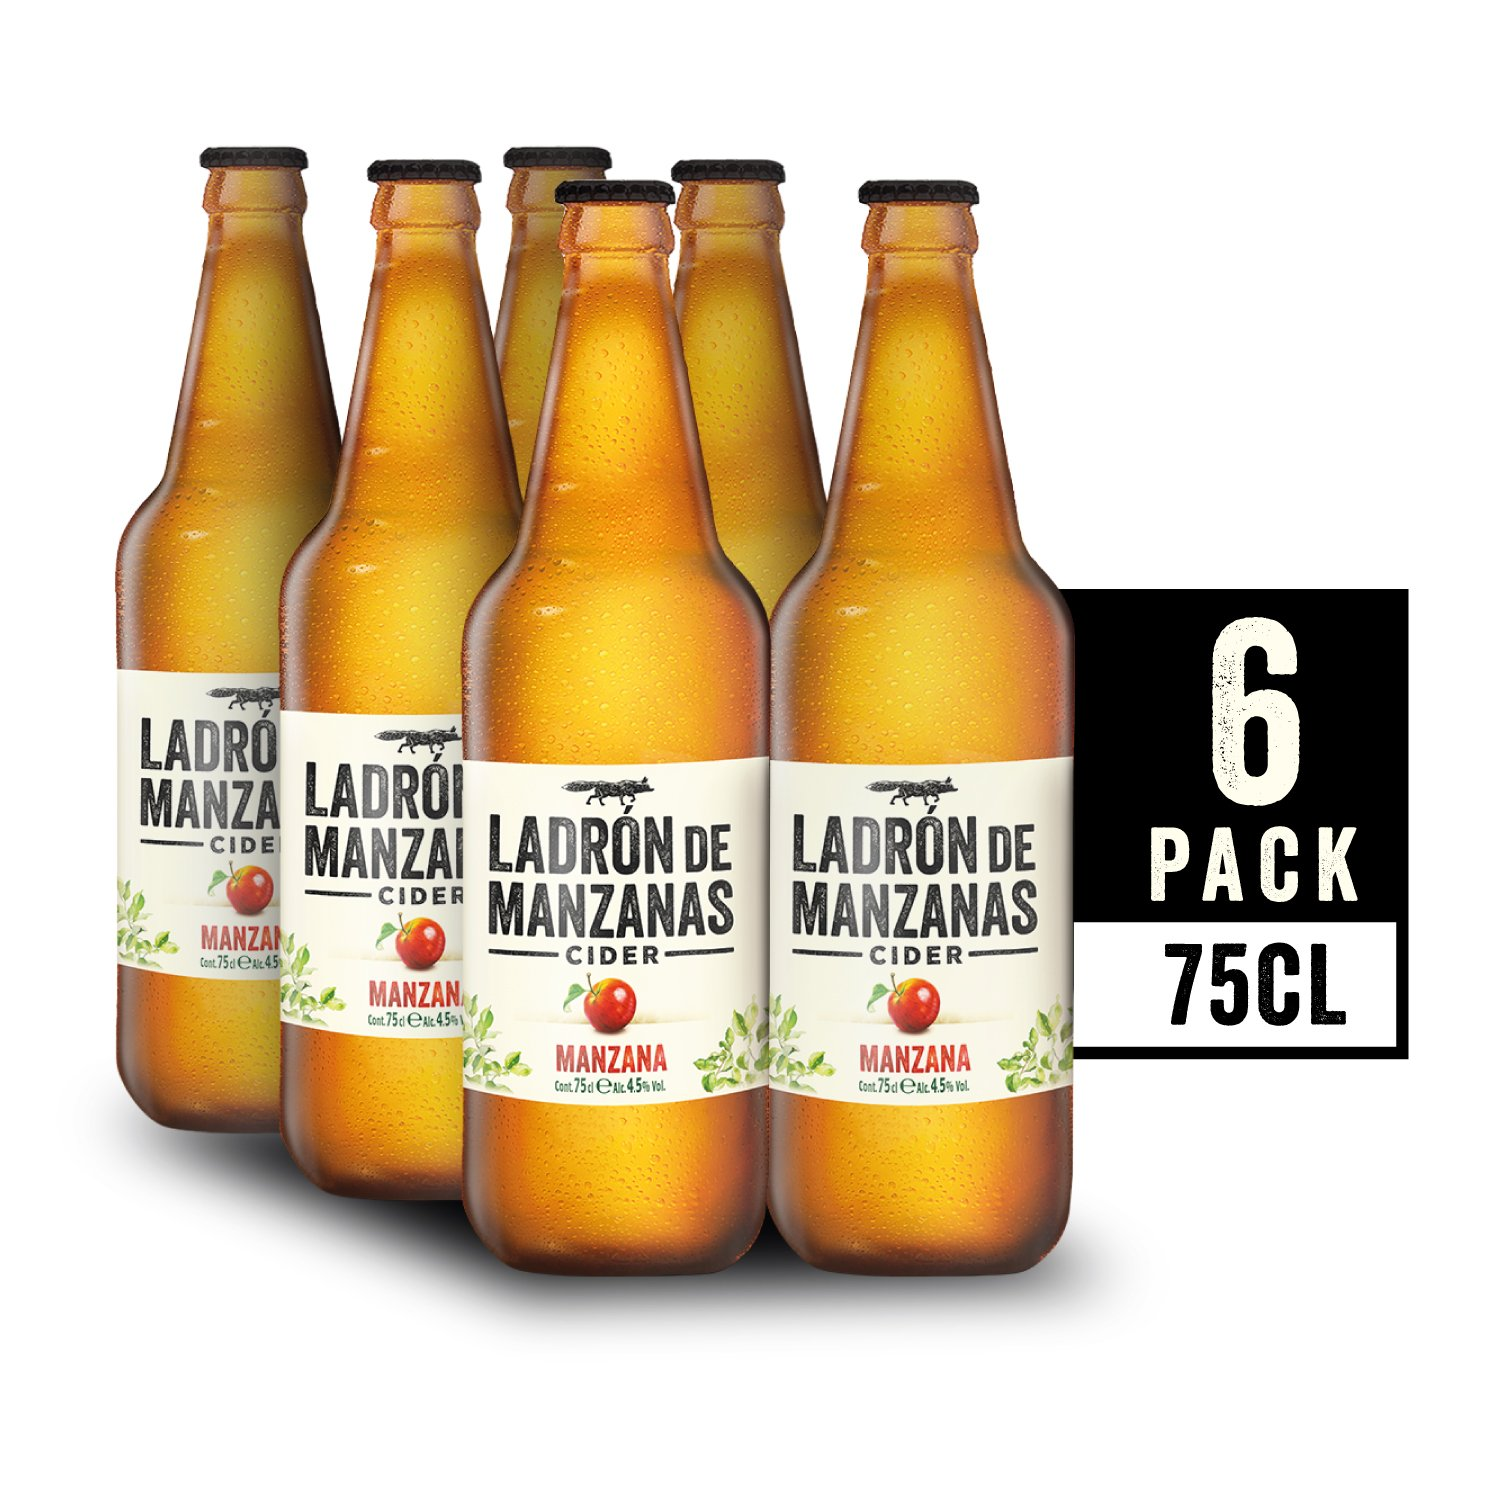 Ladrón de Manzanas Cider - Caja de 6 Botellas x 750 ml - Total: 4.5 L: Amazon.es: Amazon Pantry